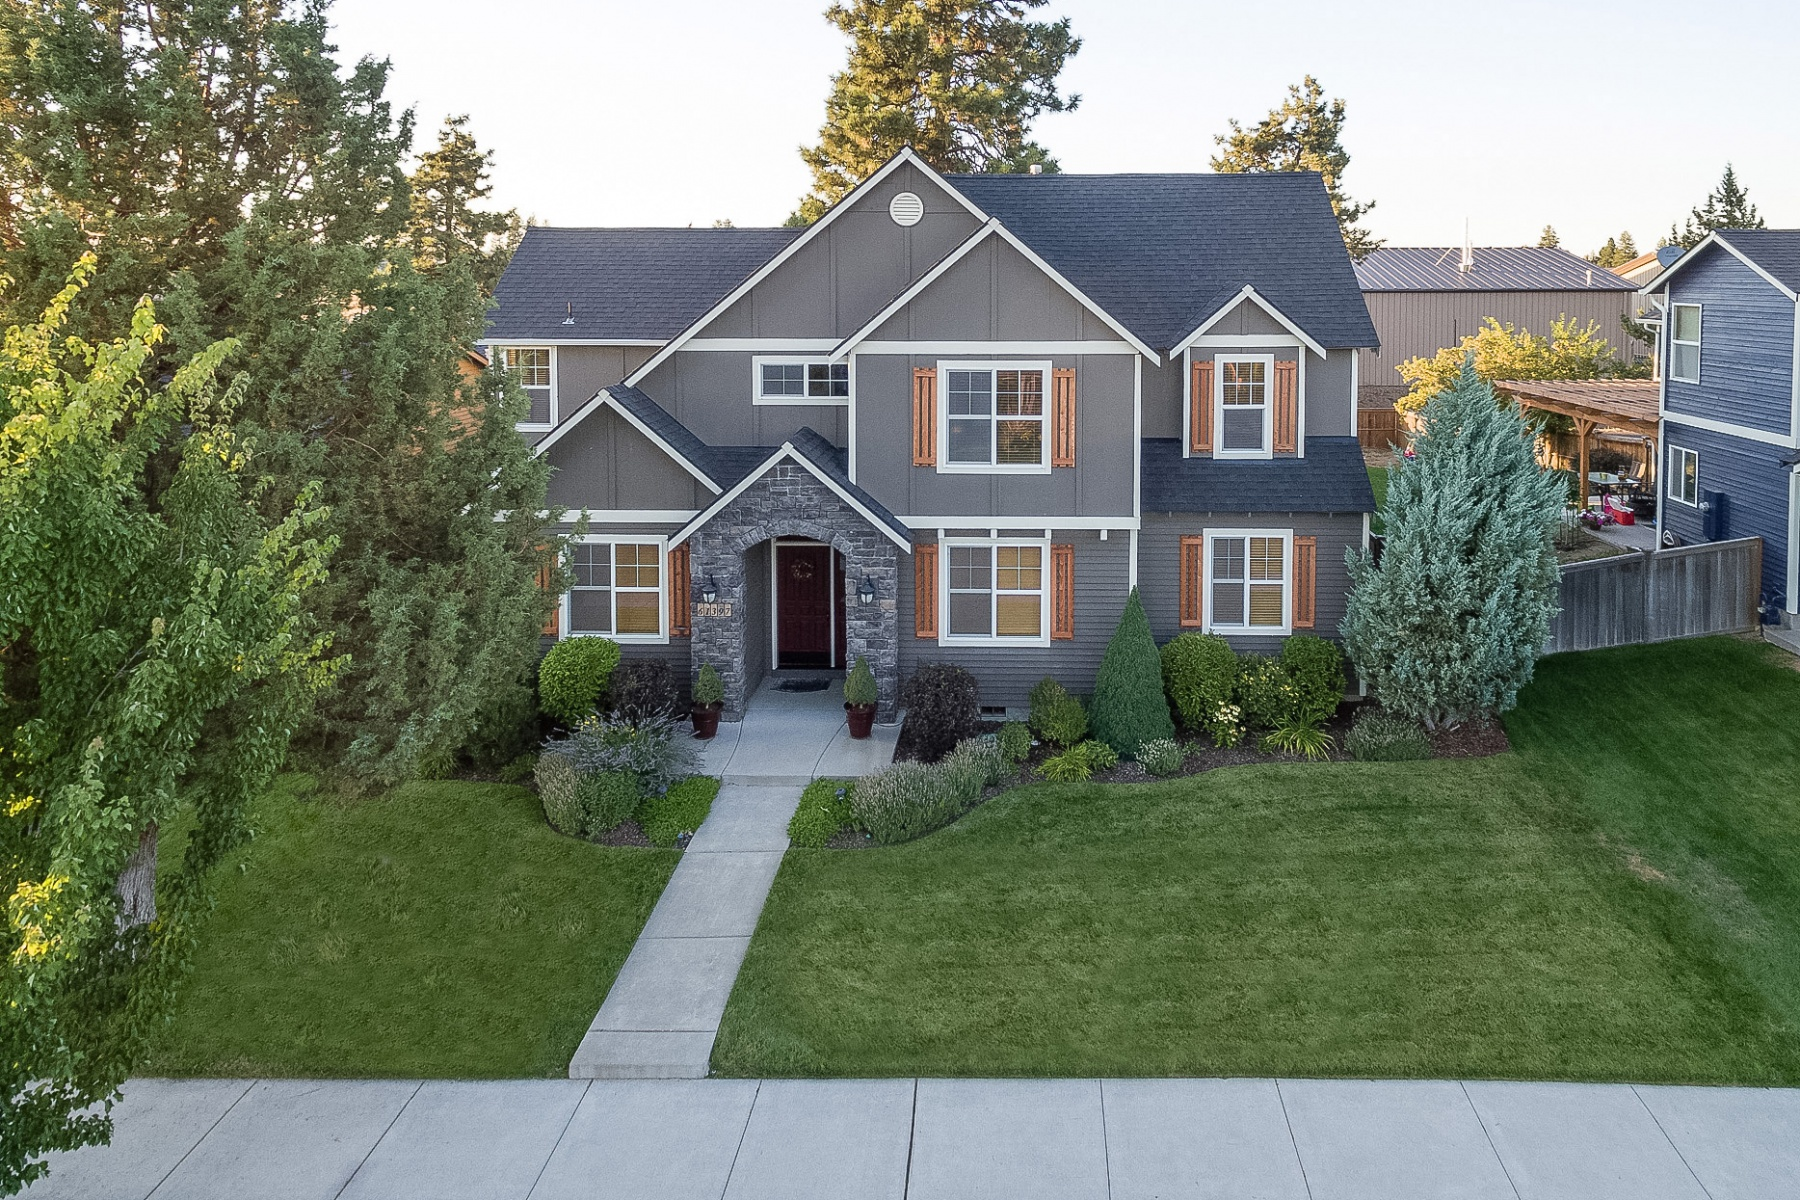 Moradia para Venda às Meticulous & Turn Key Home 61397 Fairfield Dr Bend, Oregon, 97702 Estados Unidos